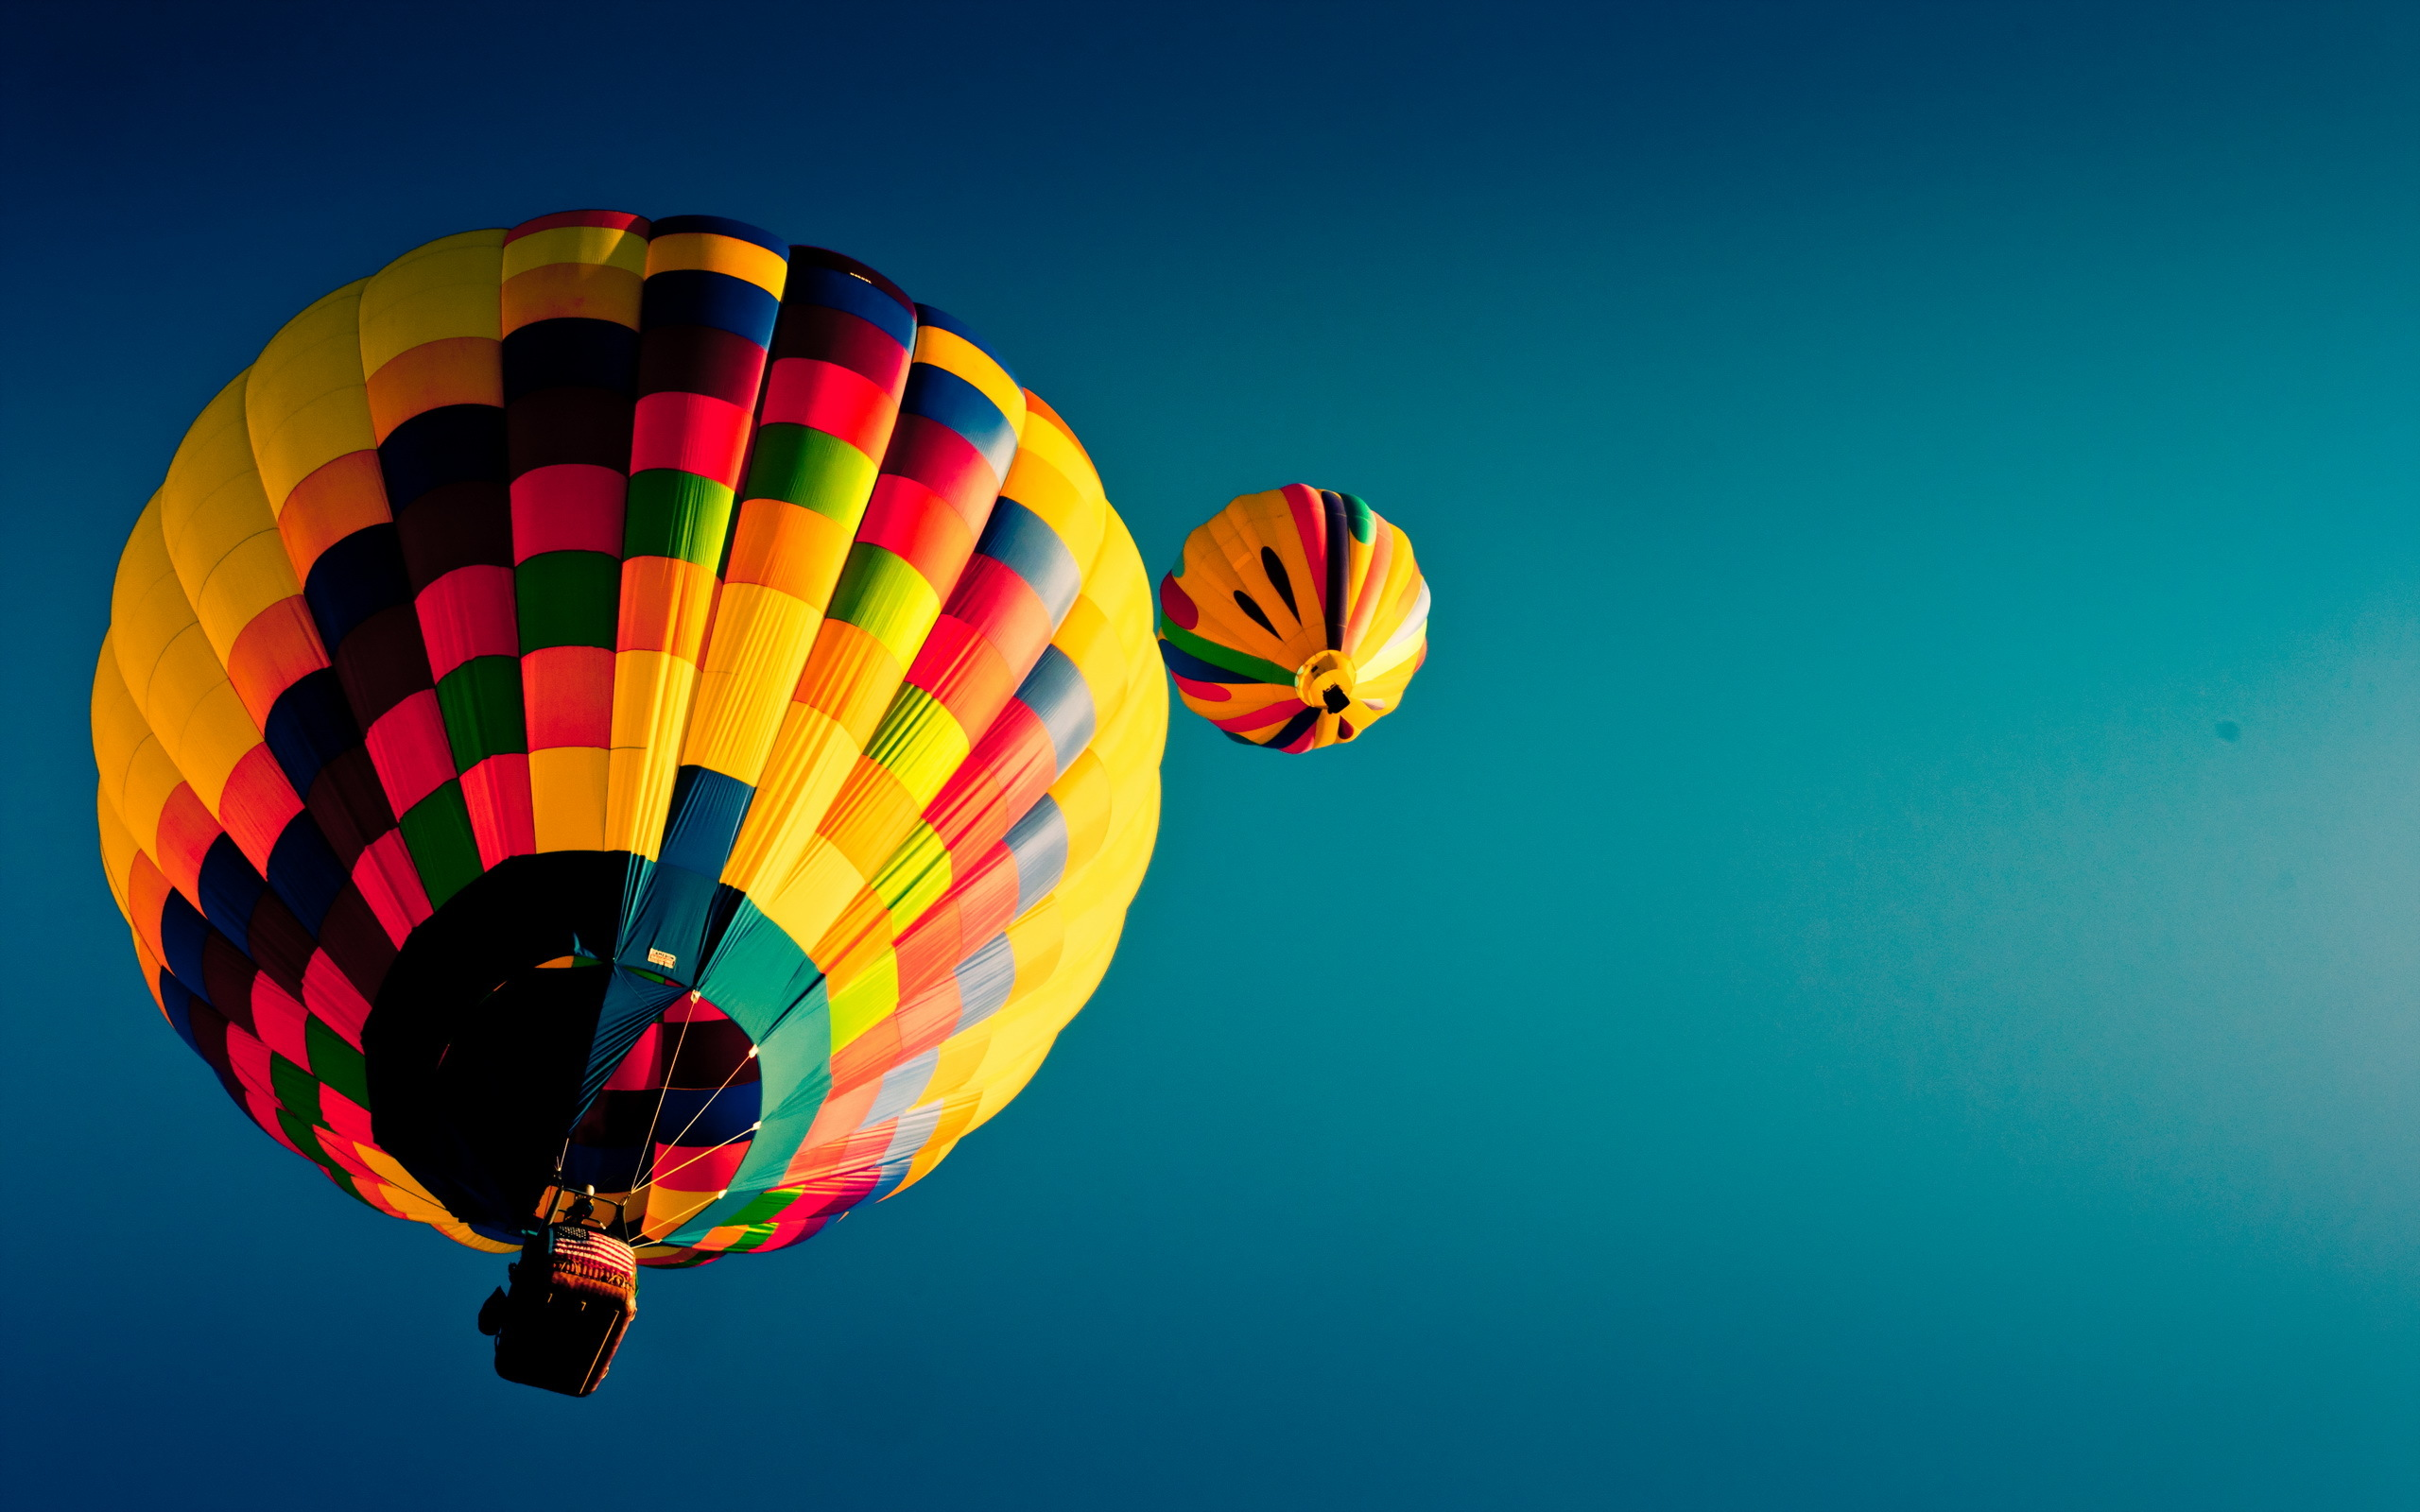 21 Wonderful Hd Hot Air Balloon Wallpapers